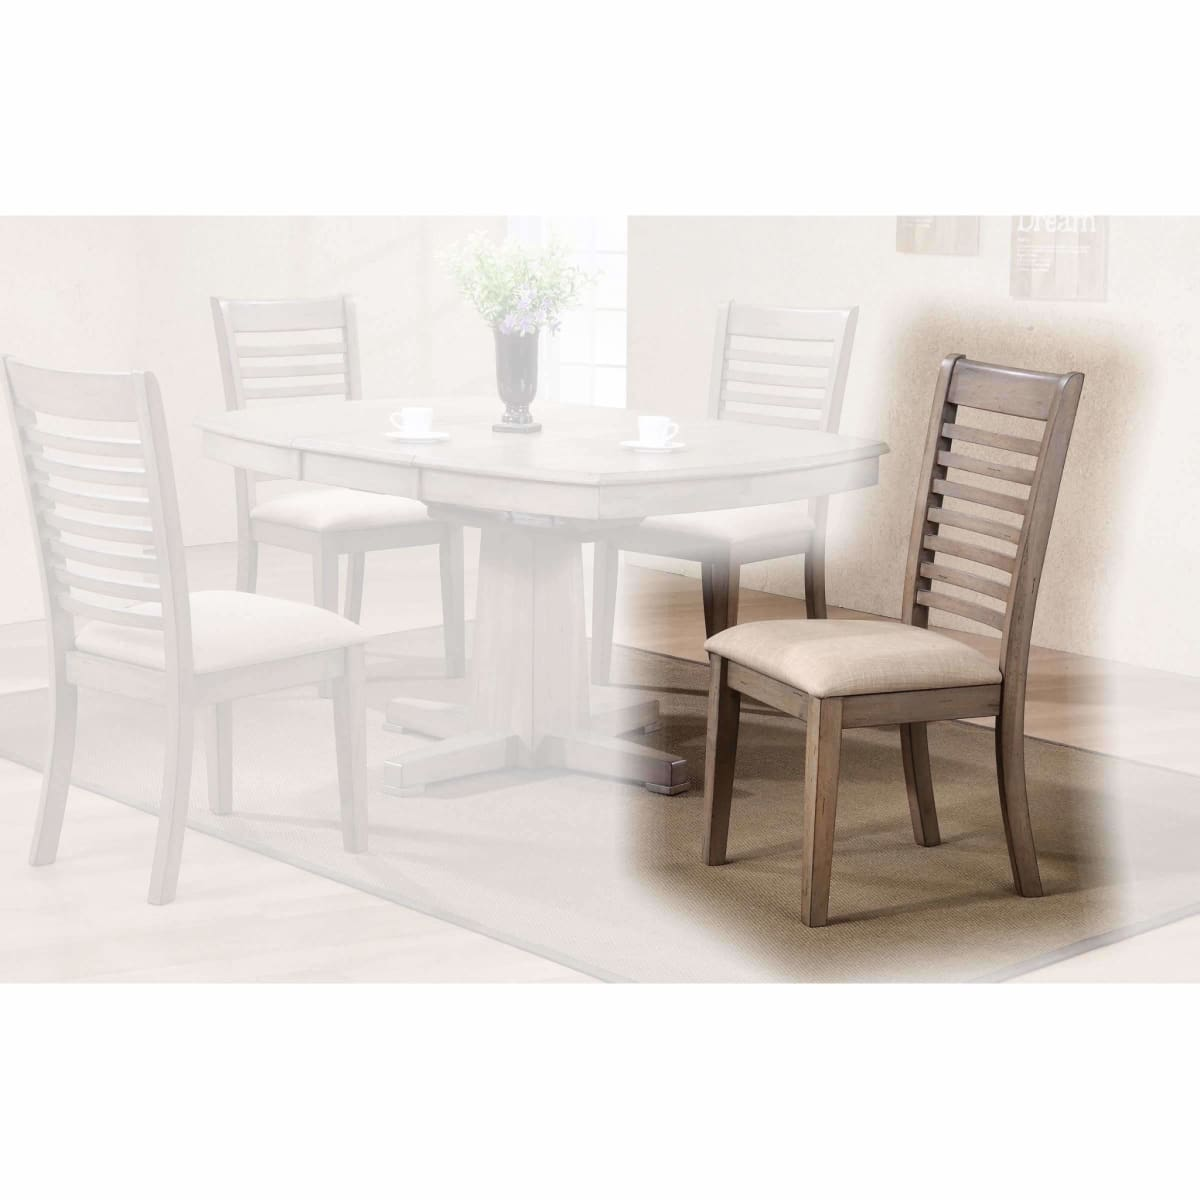 Ventura Ladderback Chair - dining chairs